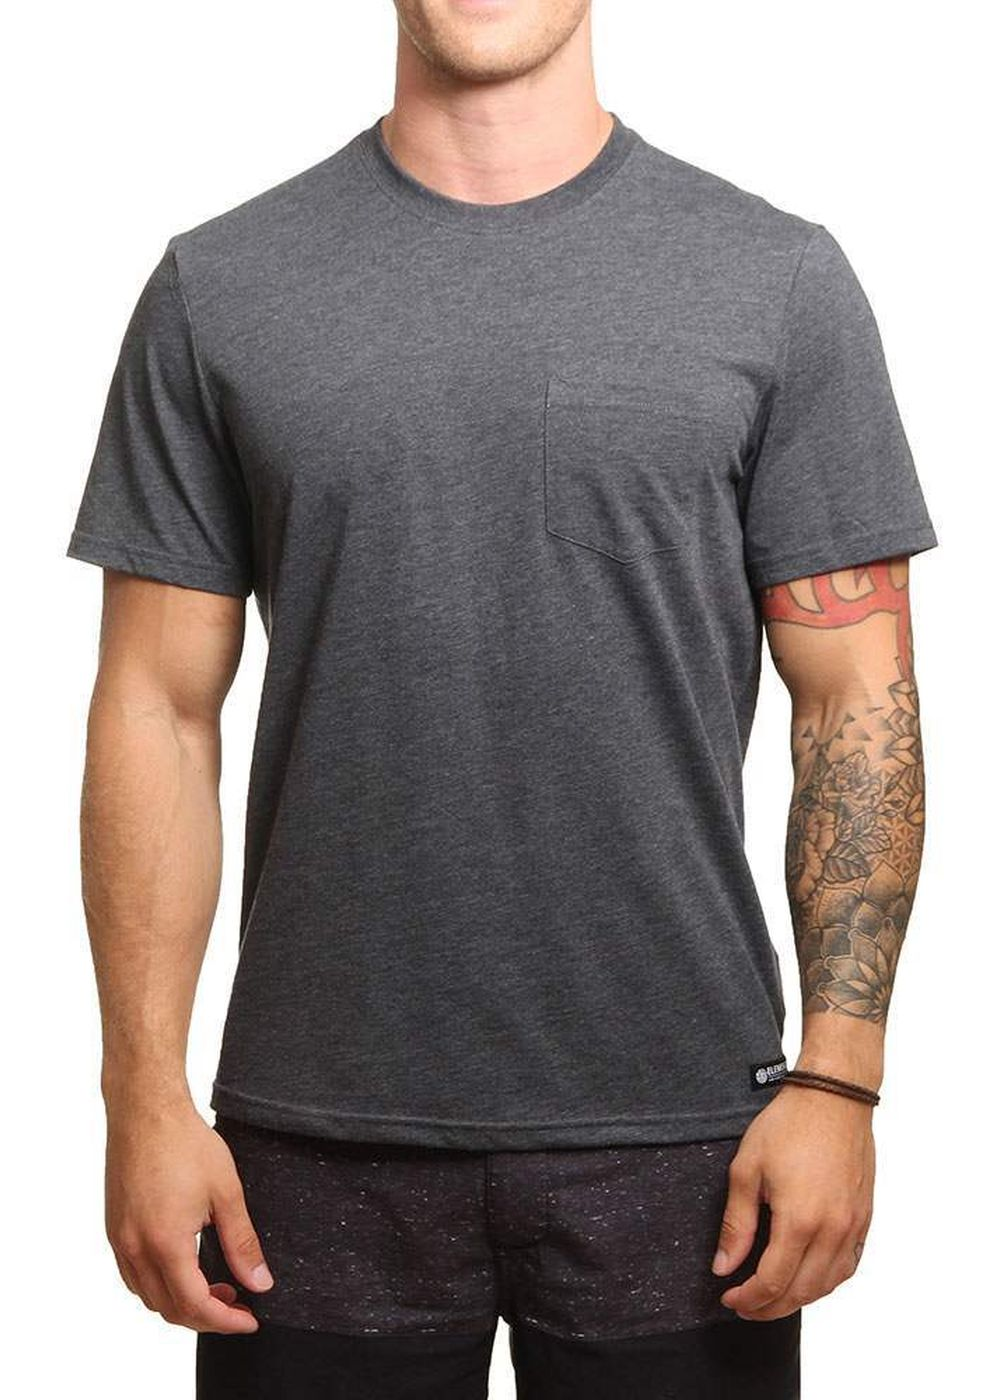 element-basic-pocket-tee-charcoal-heather